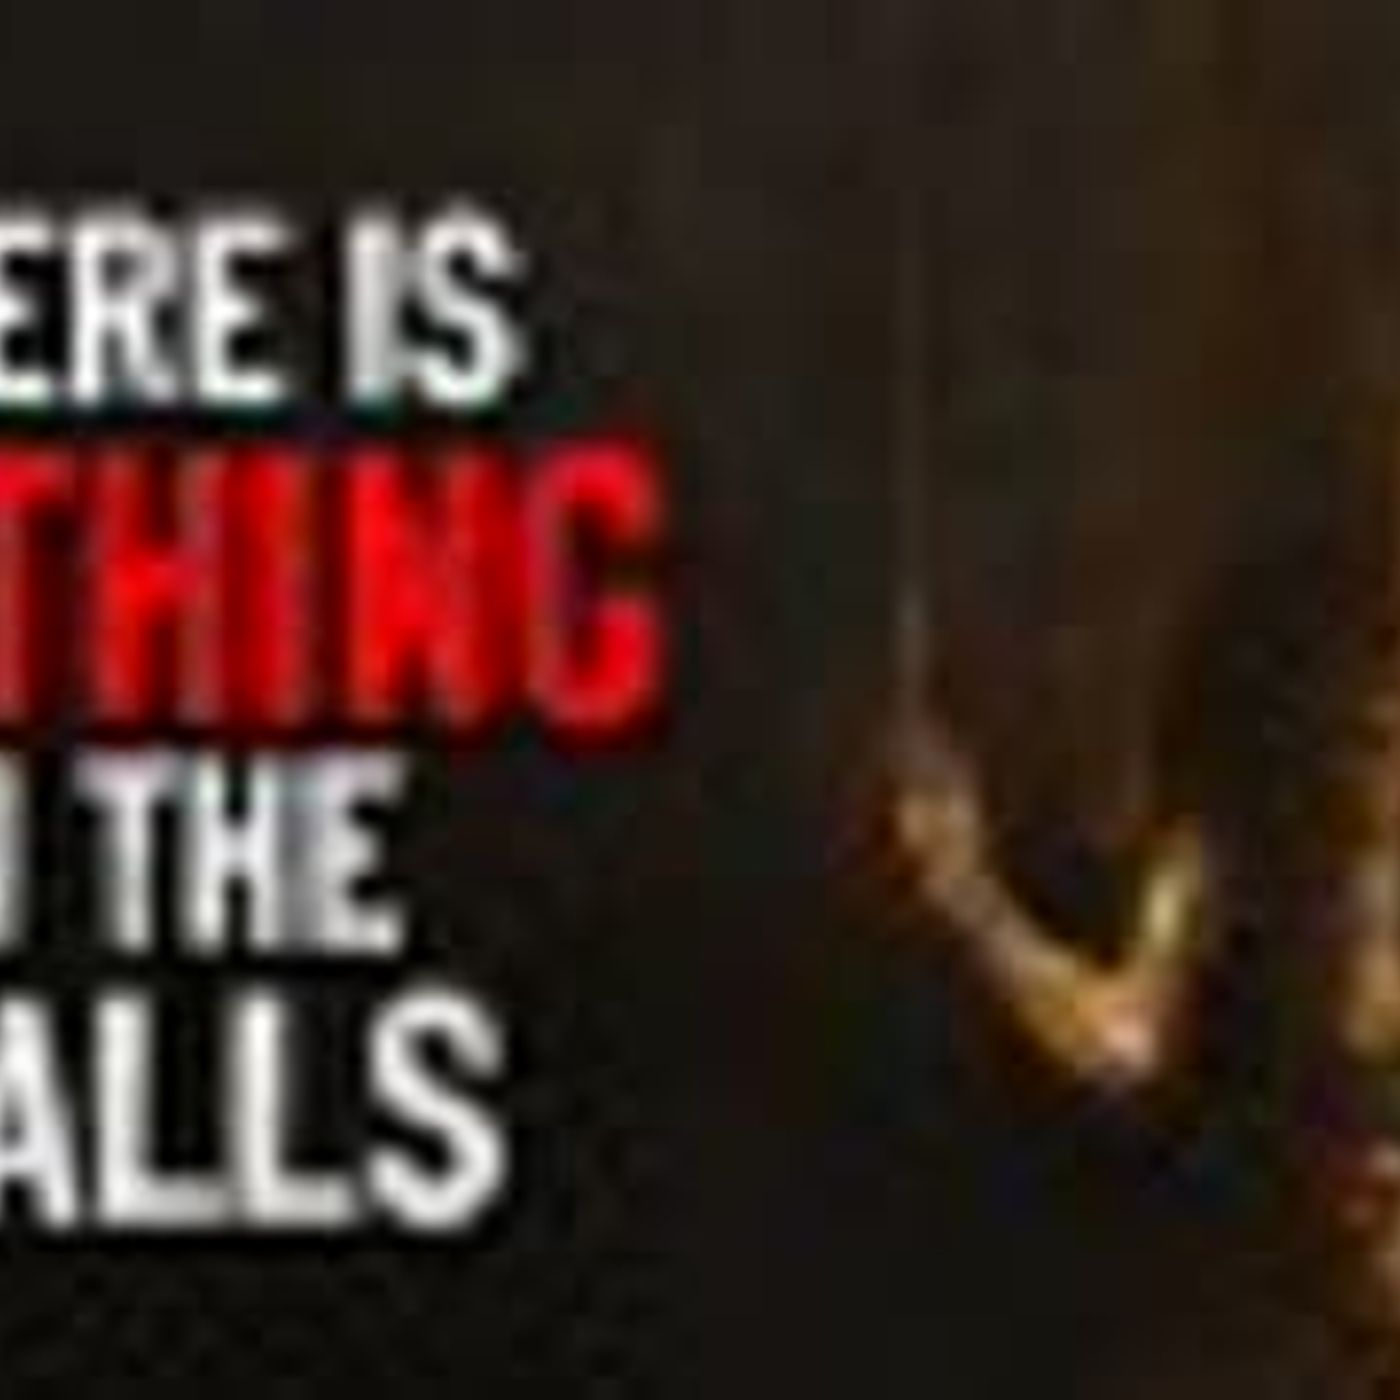 """There Is Nothing In The Walls"" Creepypasta"